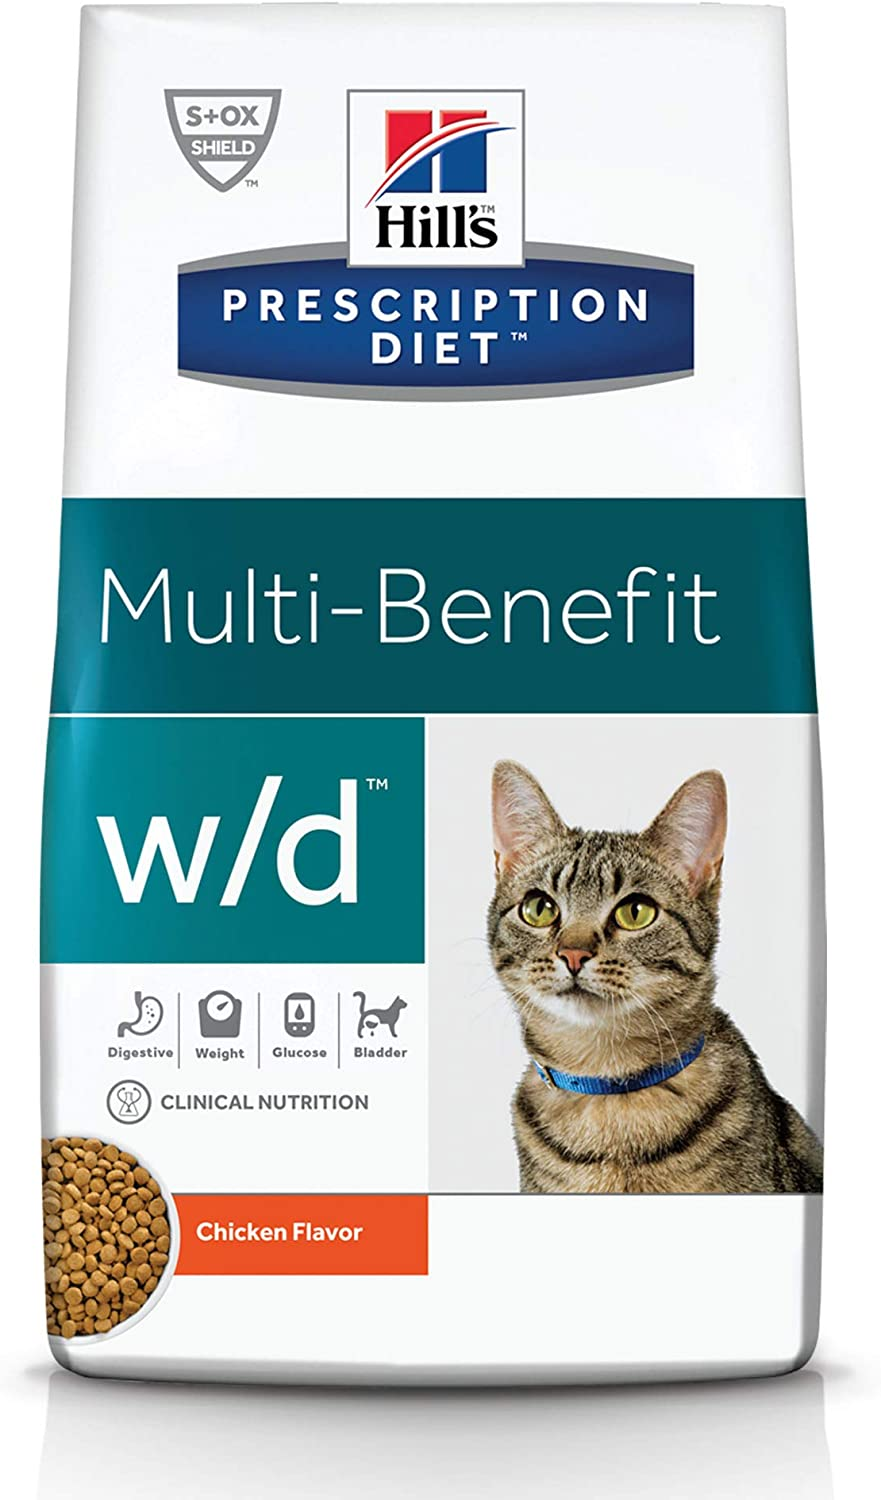 Hill's Prescription Diet w/d Multi-Benefit Digestive/Weight/Glucose/Urinary Management Cat Food